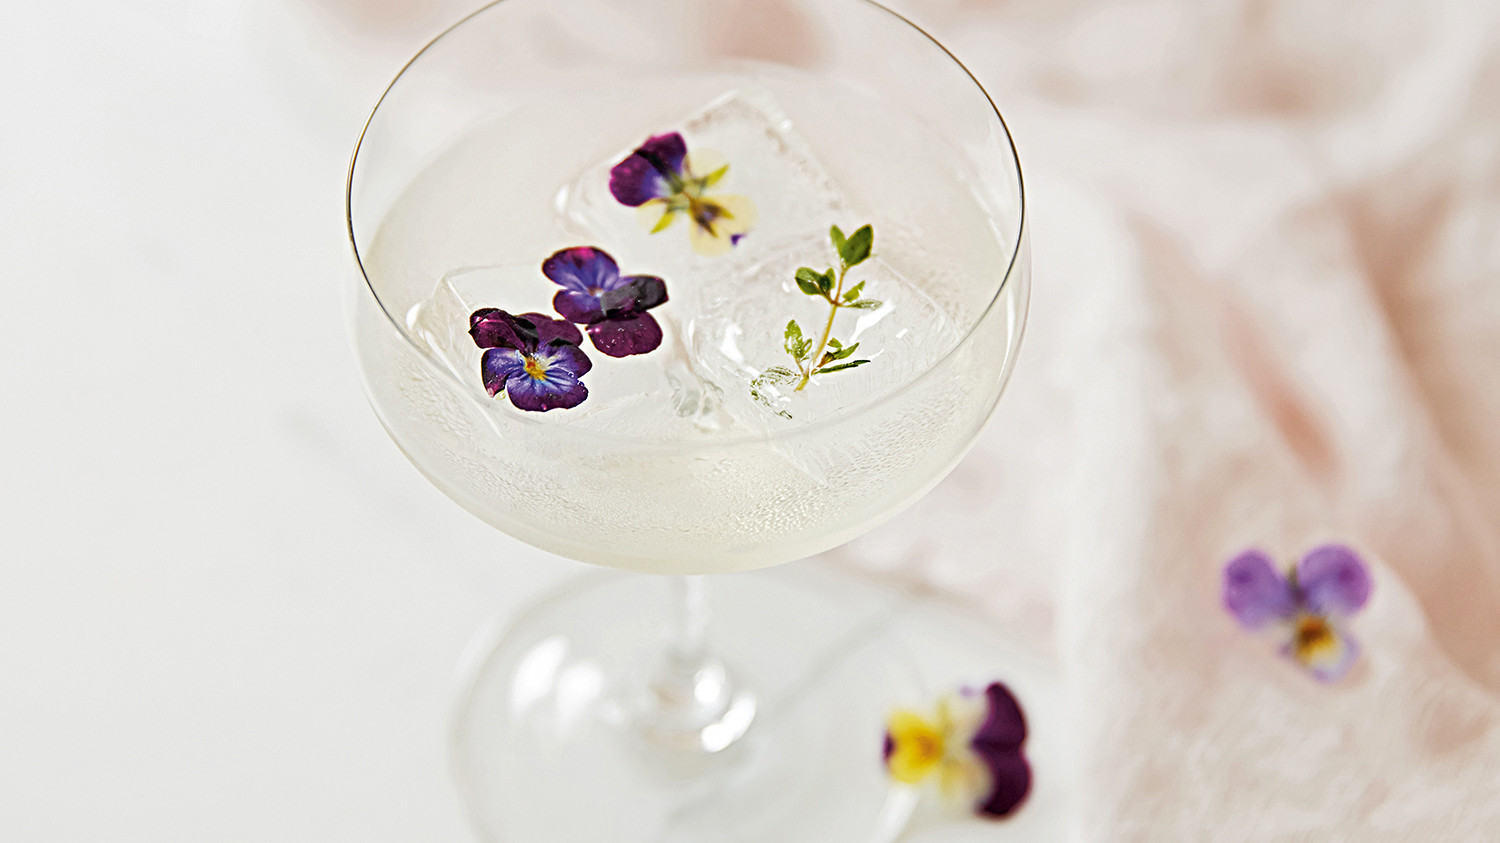 iced beverage with edible flowers